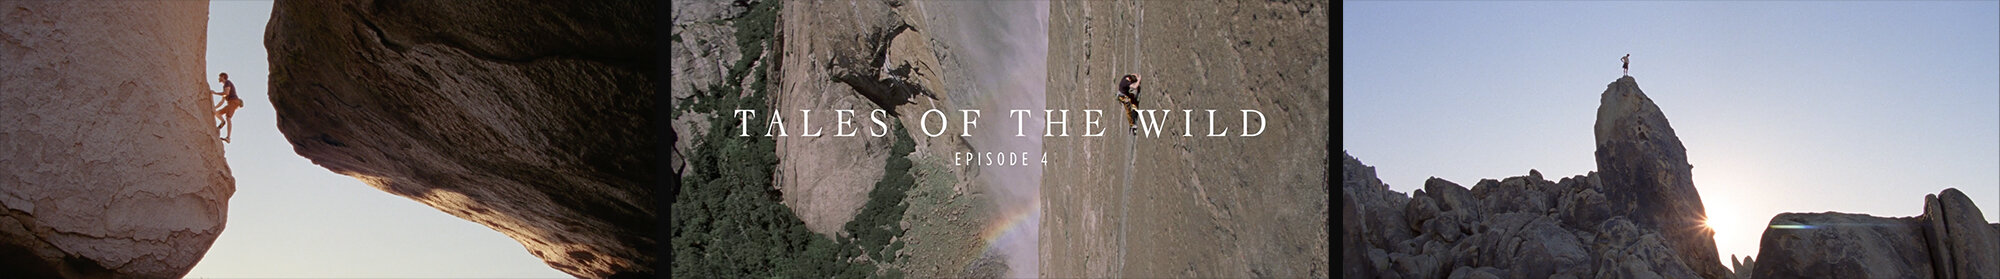 "DIOR  SAUVAGE I TALES OF THE WILD - Ep. 4 ""EL CAPITAN"" I Dir. CLEMENT BEAUVAIS"